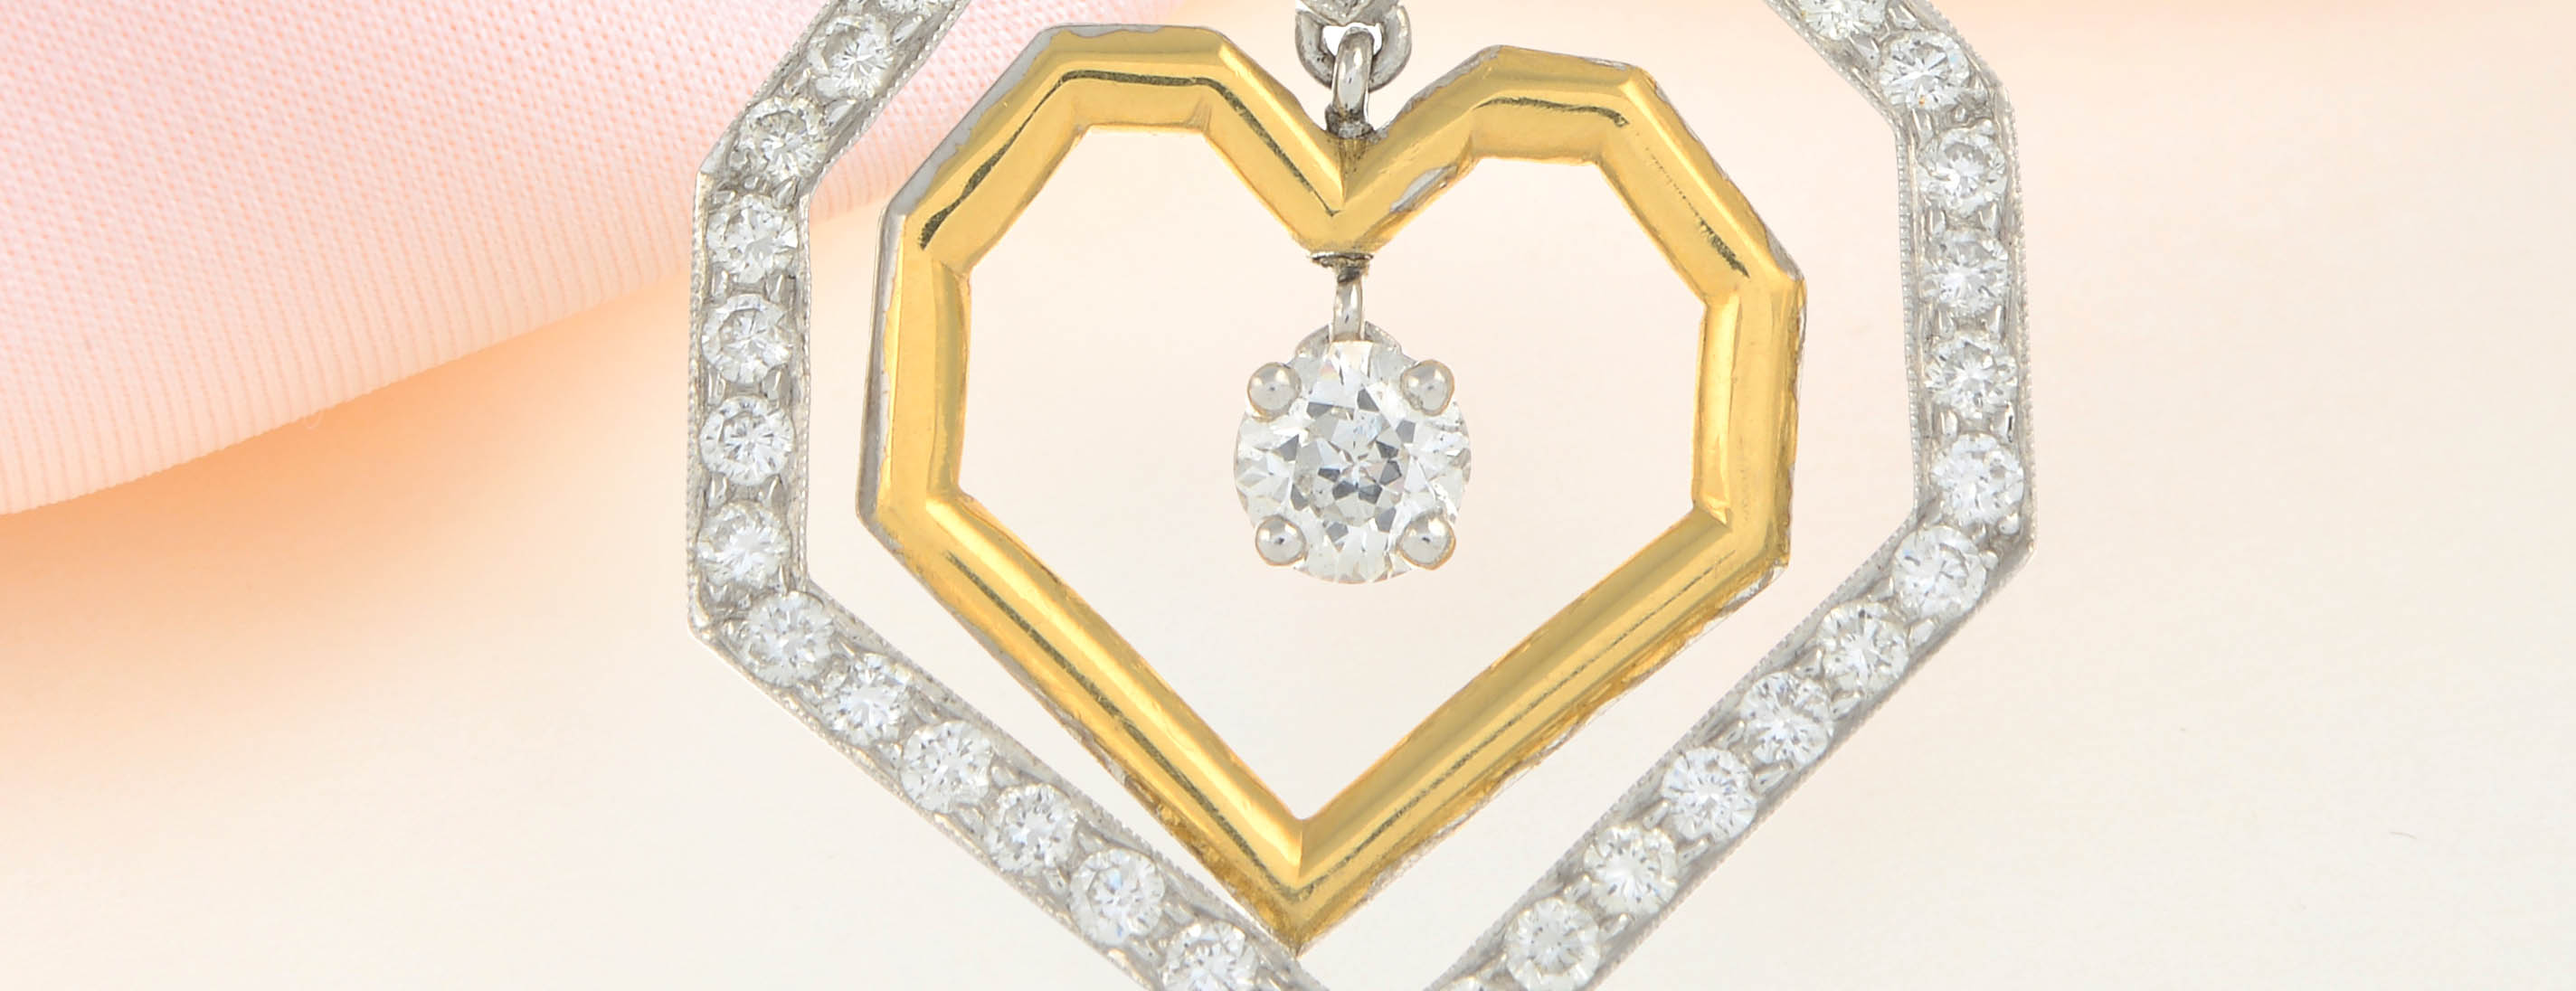 Phil Collins heart necklace at Fellow auction